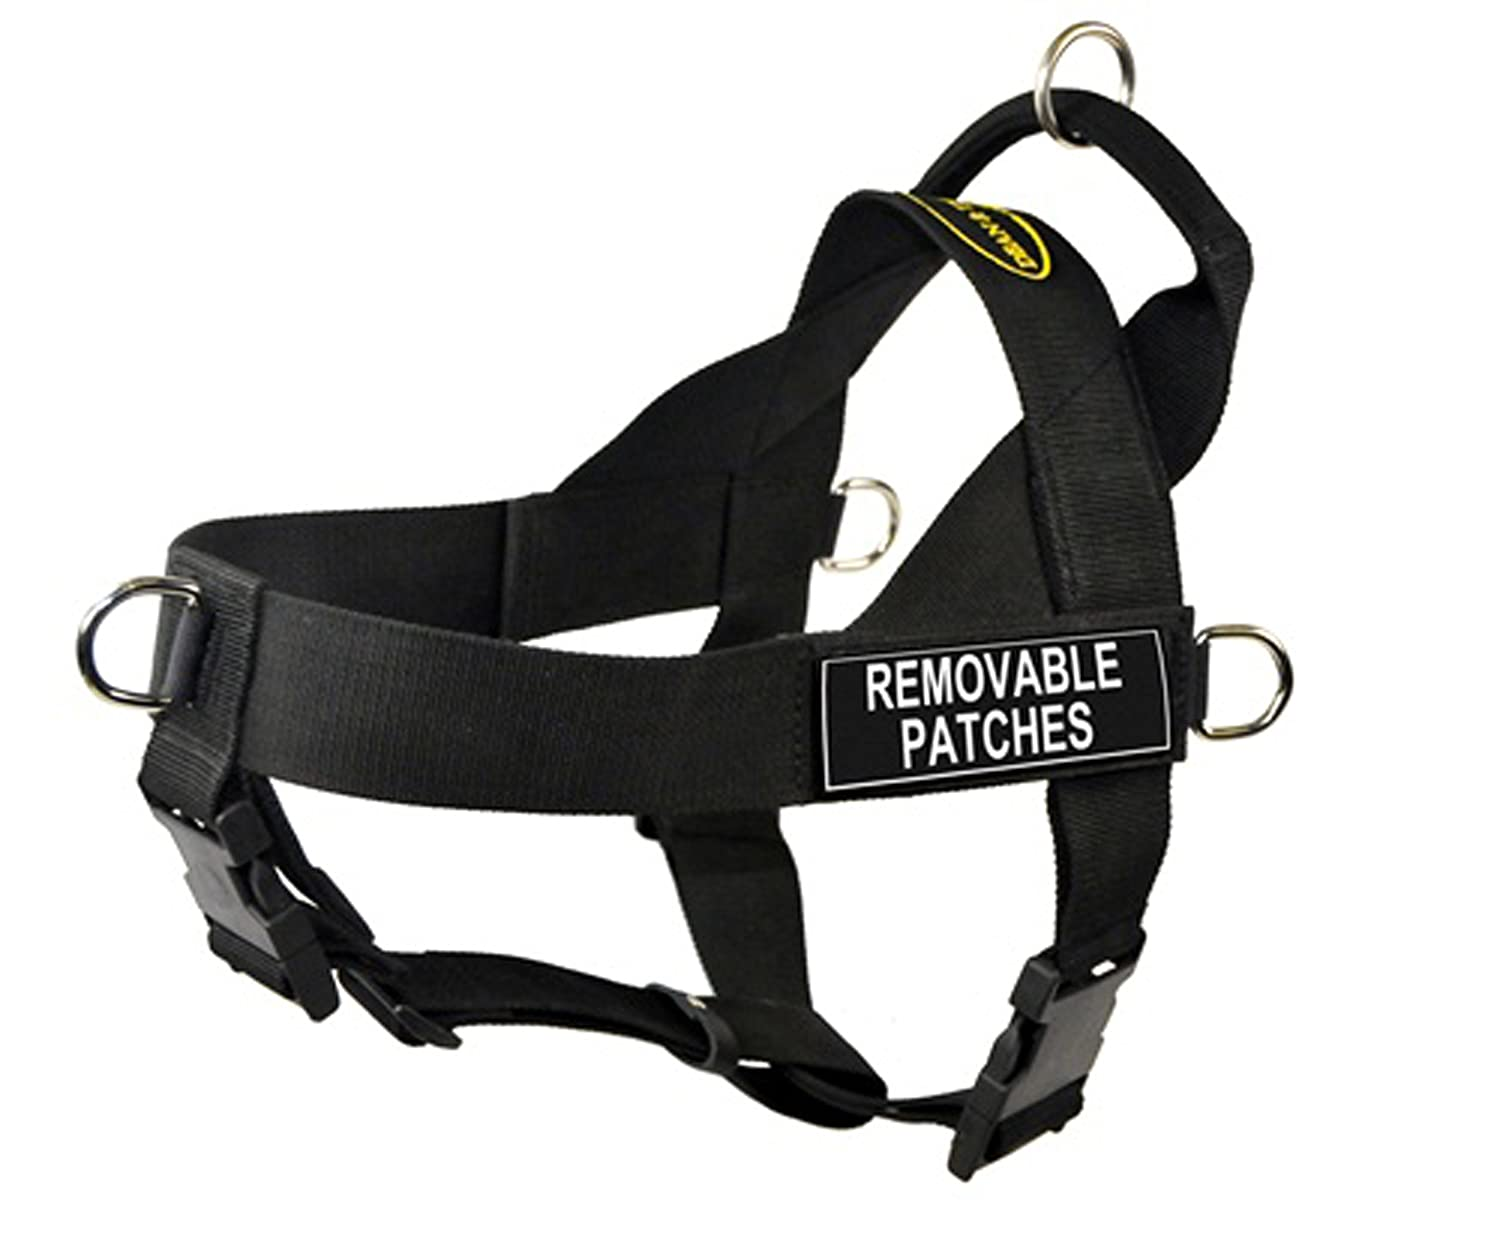 Large DT Universal No Pull Dog Harness, Clear Patches, Black, Large Fits Girth Size  79cm to 107cm